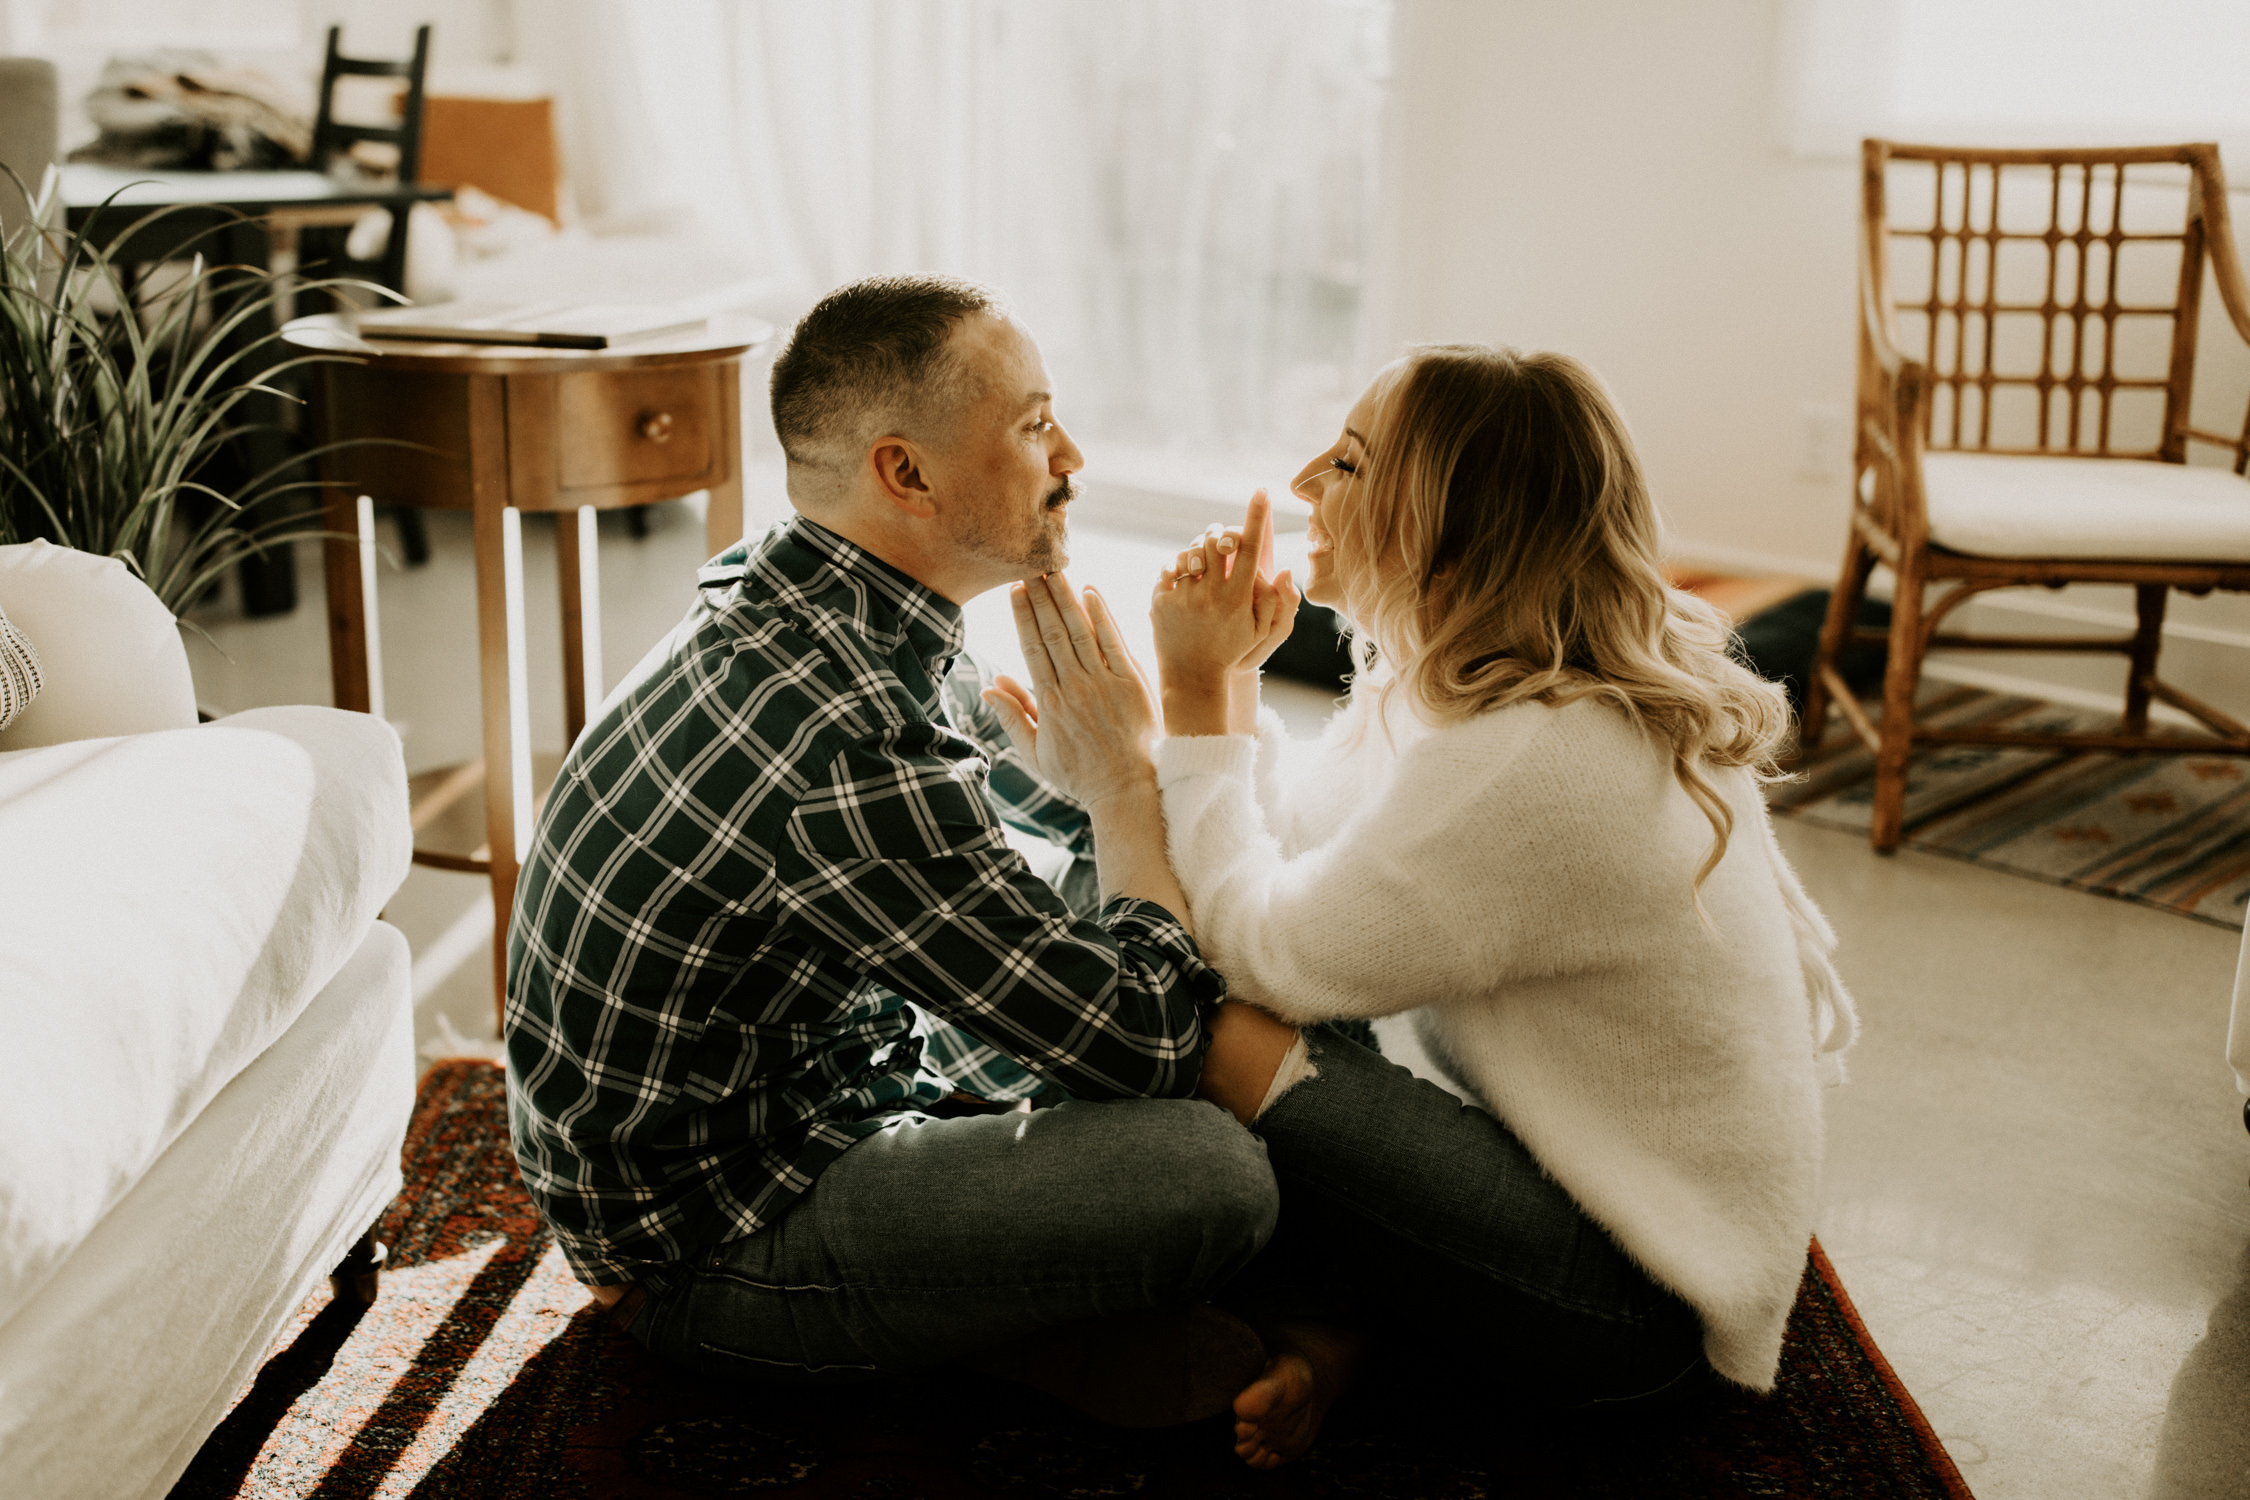 couple-intimate-in-home-session-northern-california-13.jpg